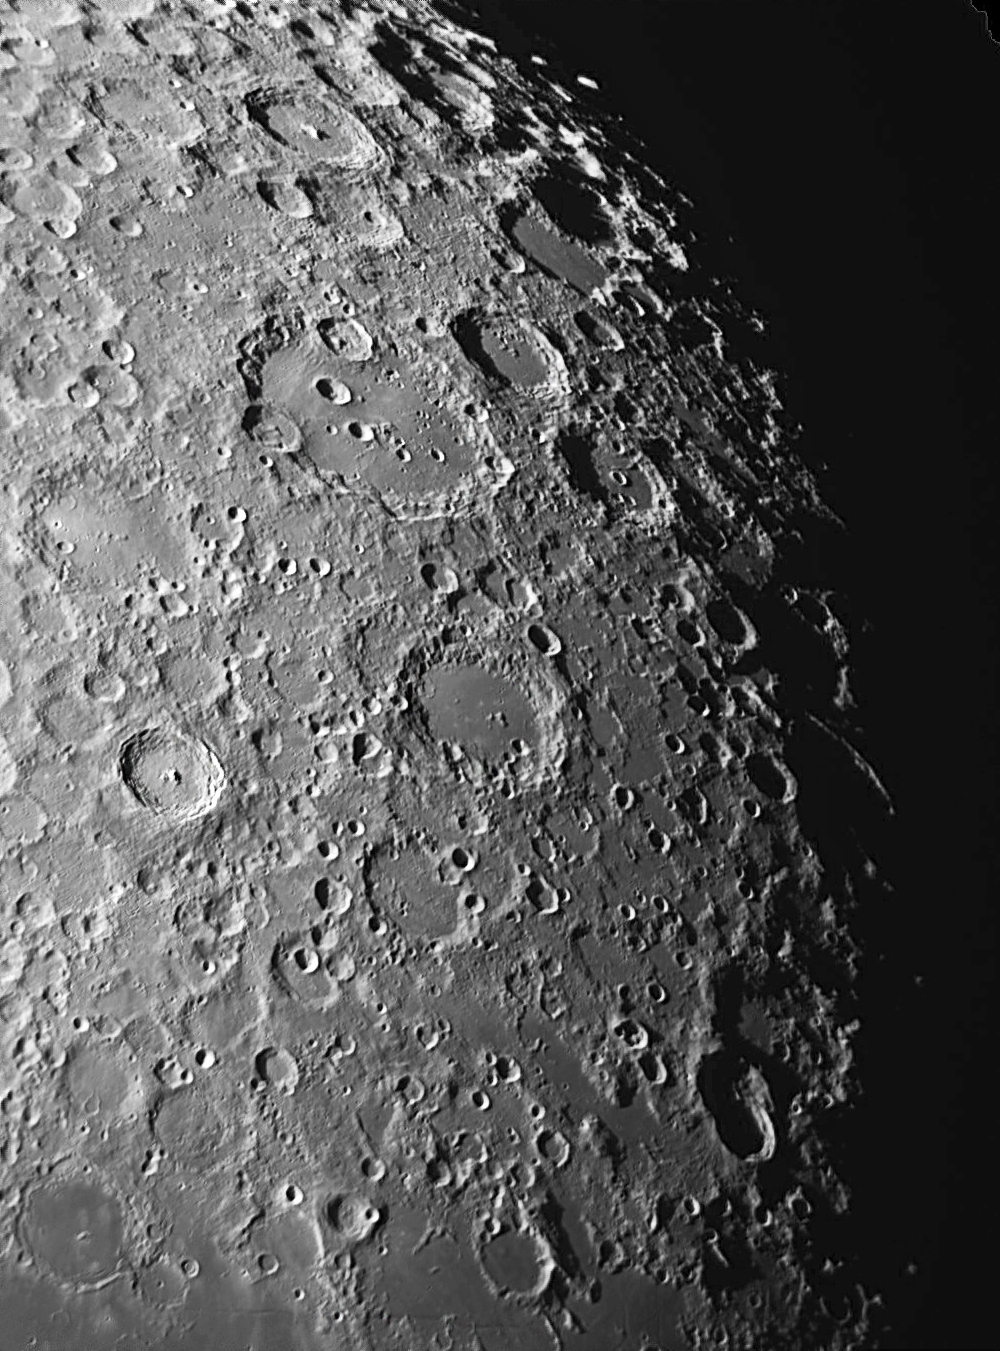 Clavius by Ken Kennedy April 2020